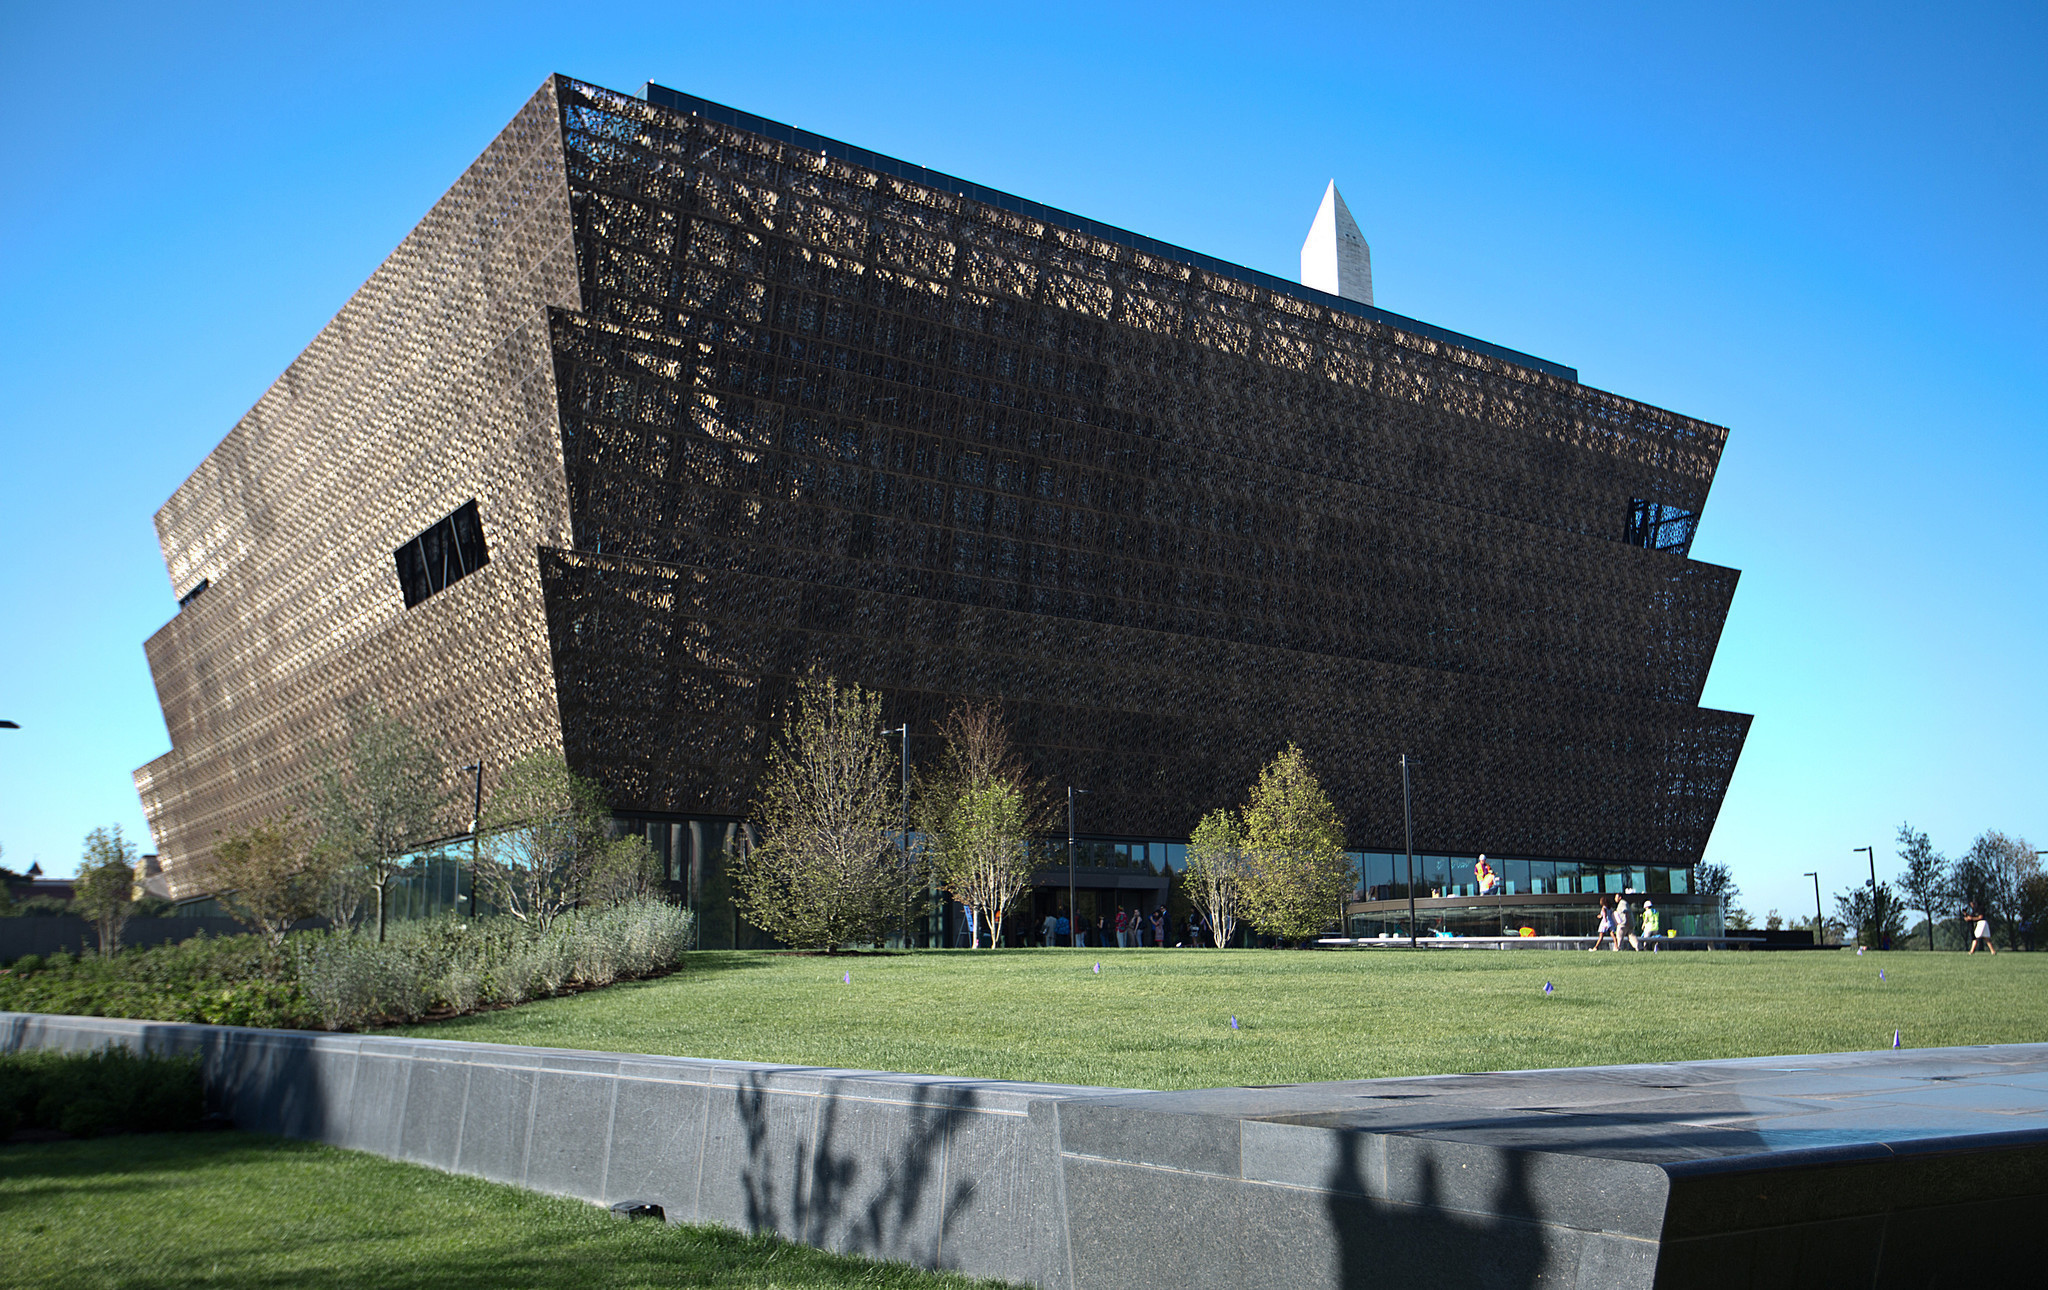 National Museum of African American History and Culture in D.C. prepares for its grand opening